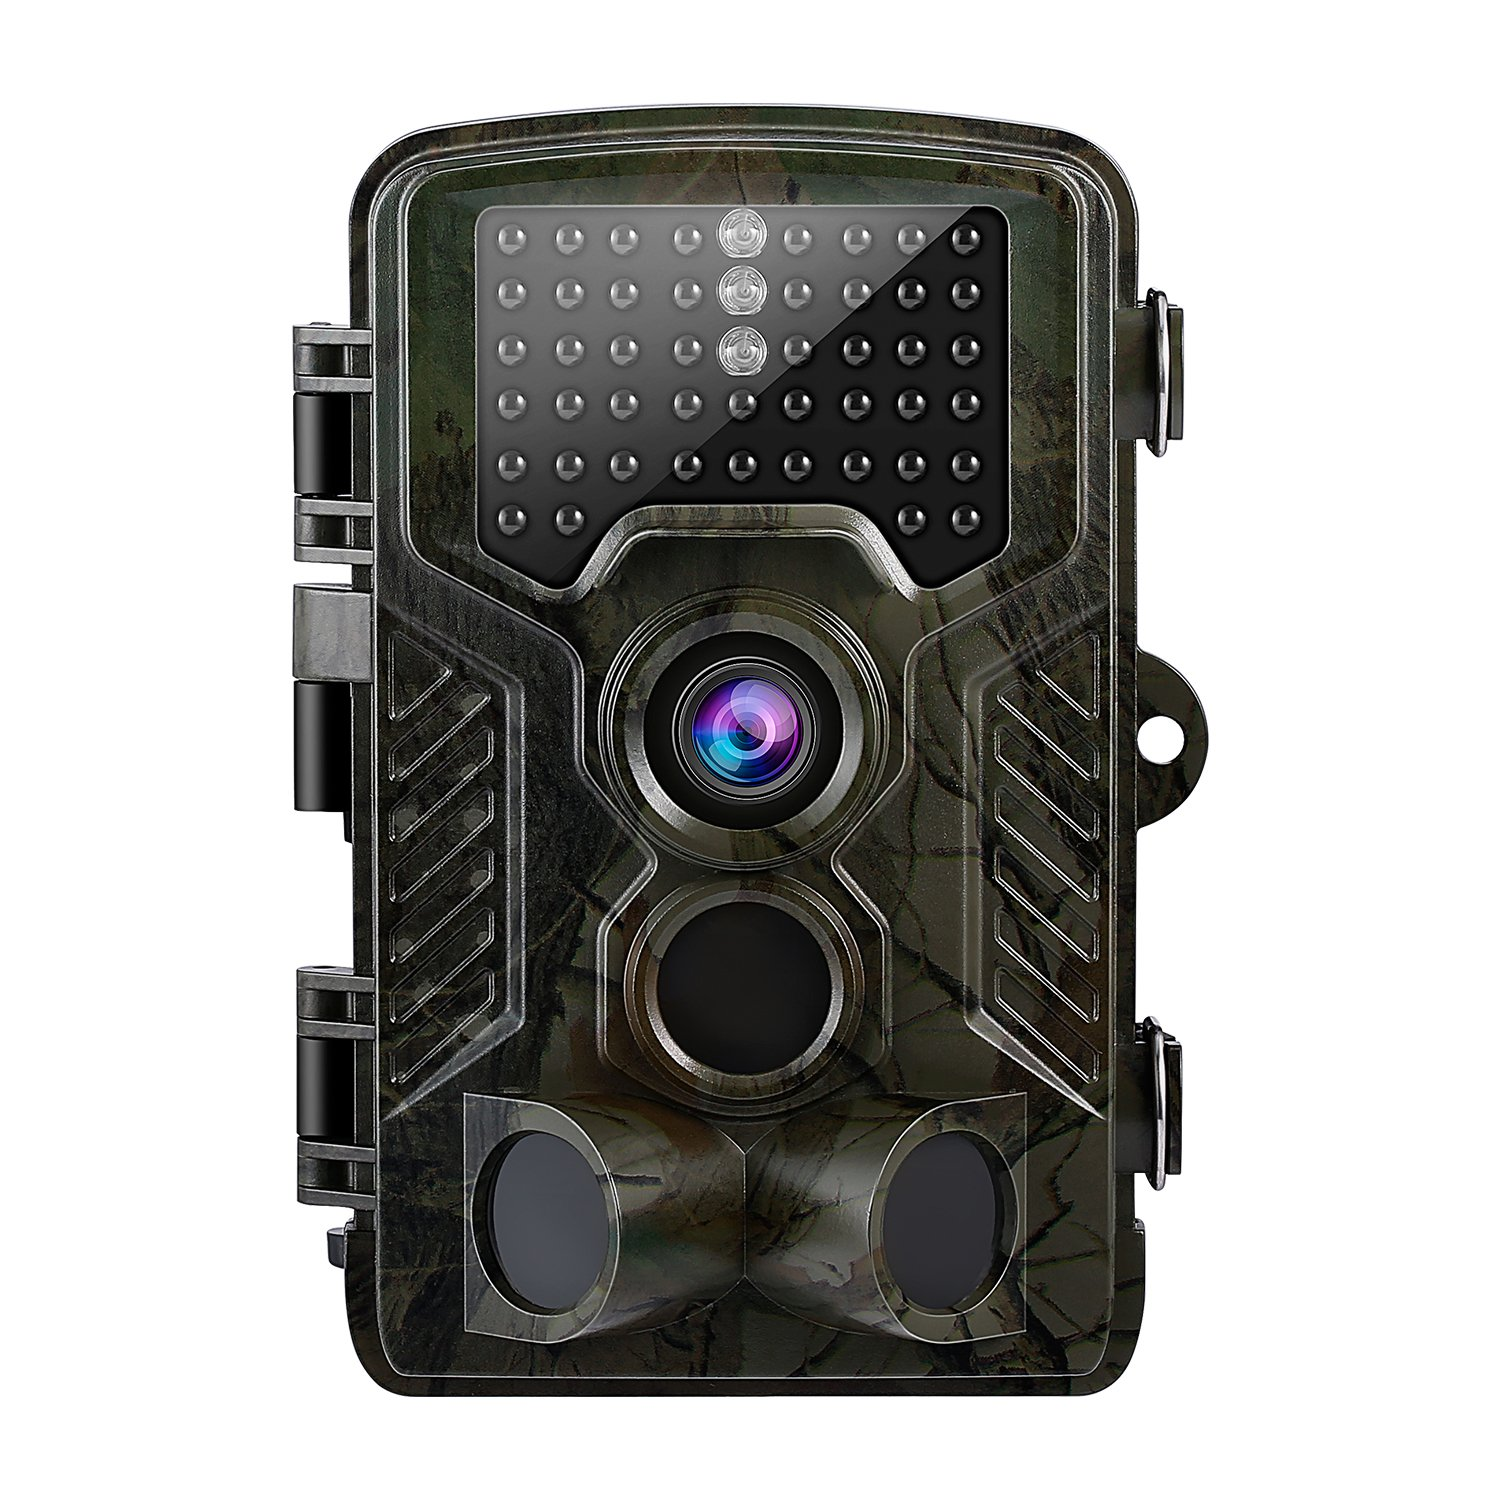 YKS Hunting Trail Game Camera, Motion Activated Trailcam with 3 Pir Sensors, Time Lapse 2.4 Inch LCD, Low Glow 46pcs Leds, 12MP, 1080p HD Infrared Night Vision IP56 by YKS